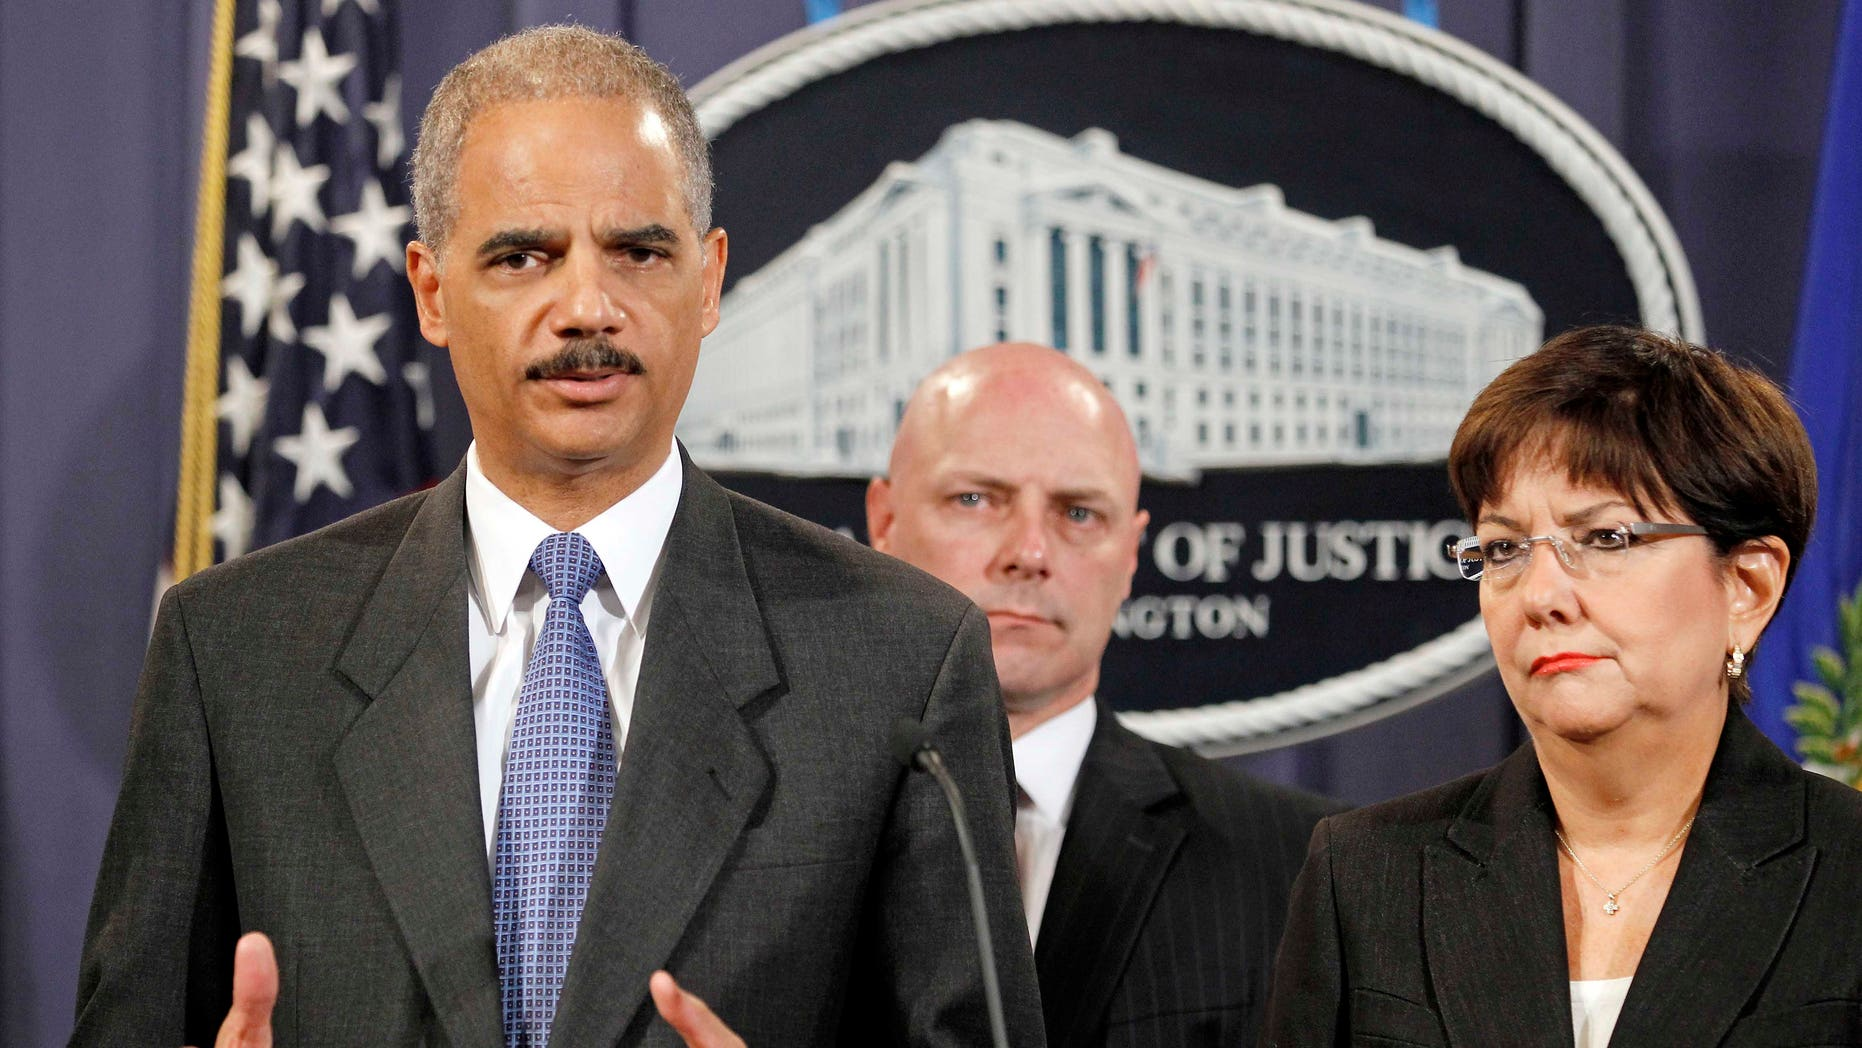 Attorney General Eric Holder, left, accompanied by US Attorney Rosa Emilia Rodriguez-Velez of the District of Puerto Rico, right, and FBI Executive Director Shawn Henry, answers questions during a news conference at the Justice Department in Washington, Wednesday, Oct. 6, 2010. (AP Photo/Haraz N. Ghanbari)